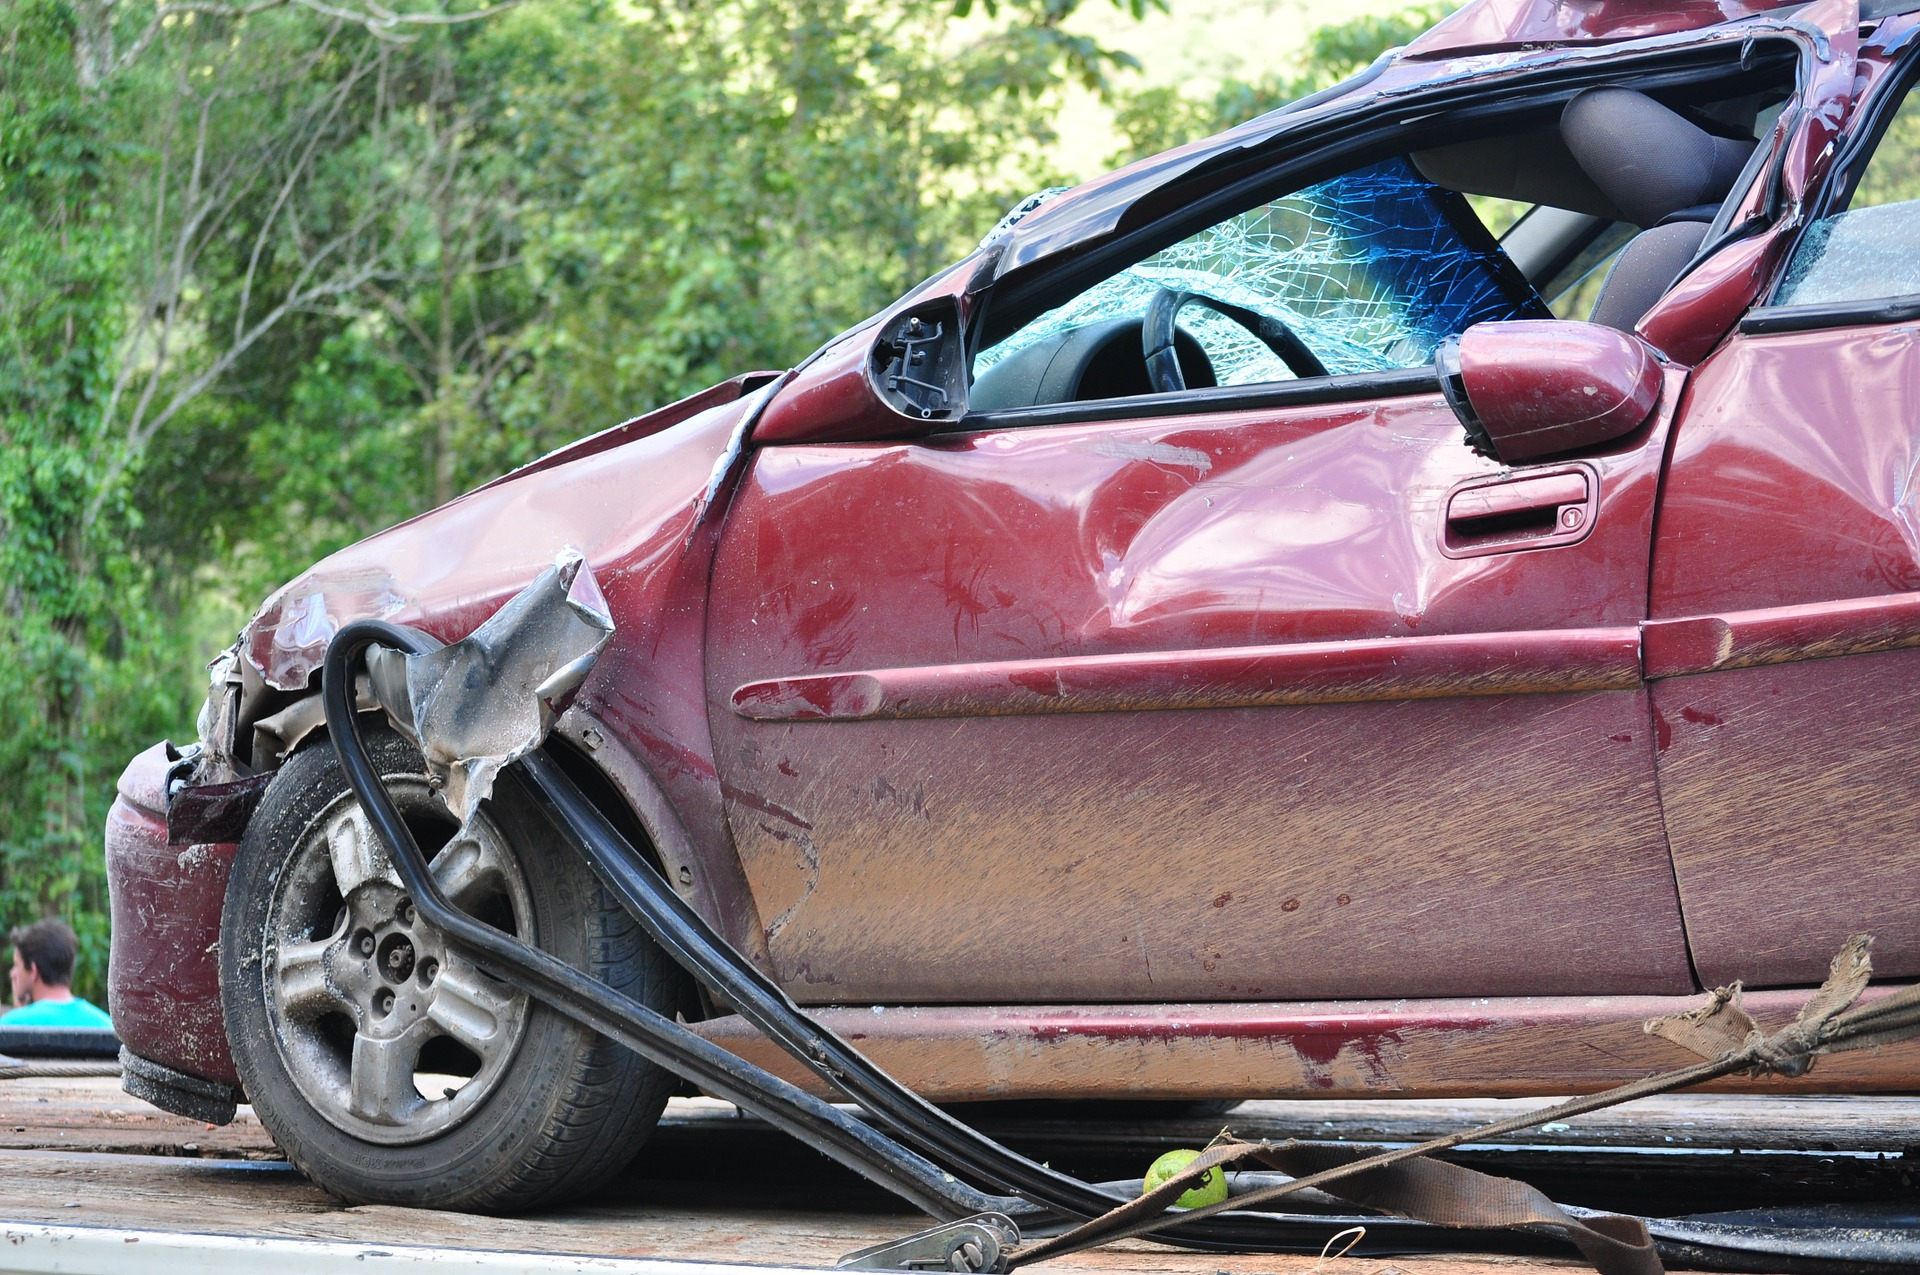 Photograph: Red car on flatbed with smashed front end from a collision.